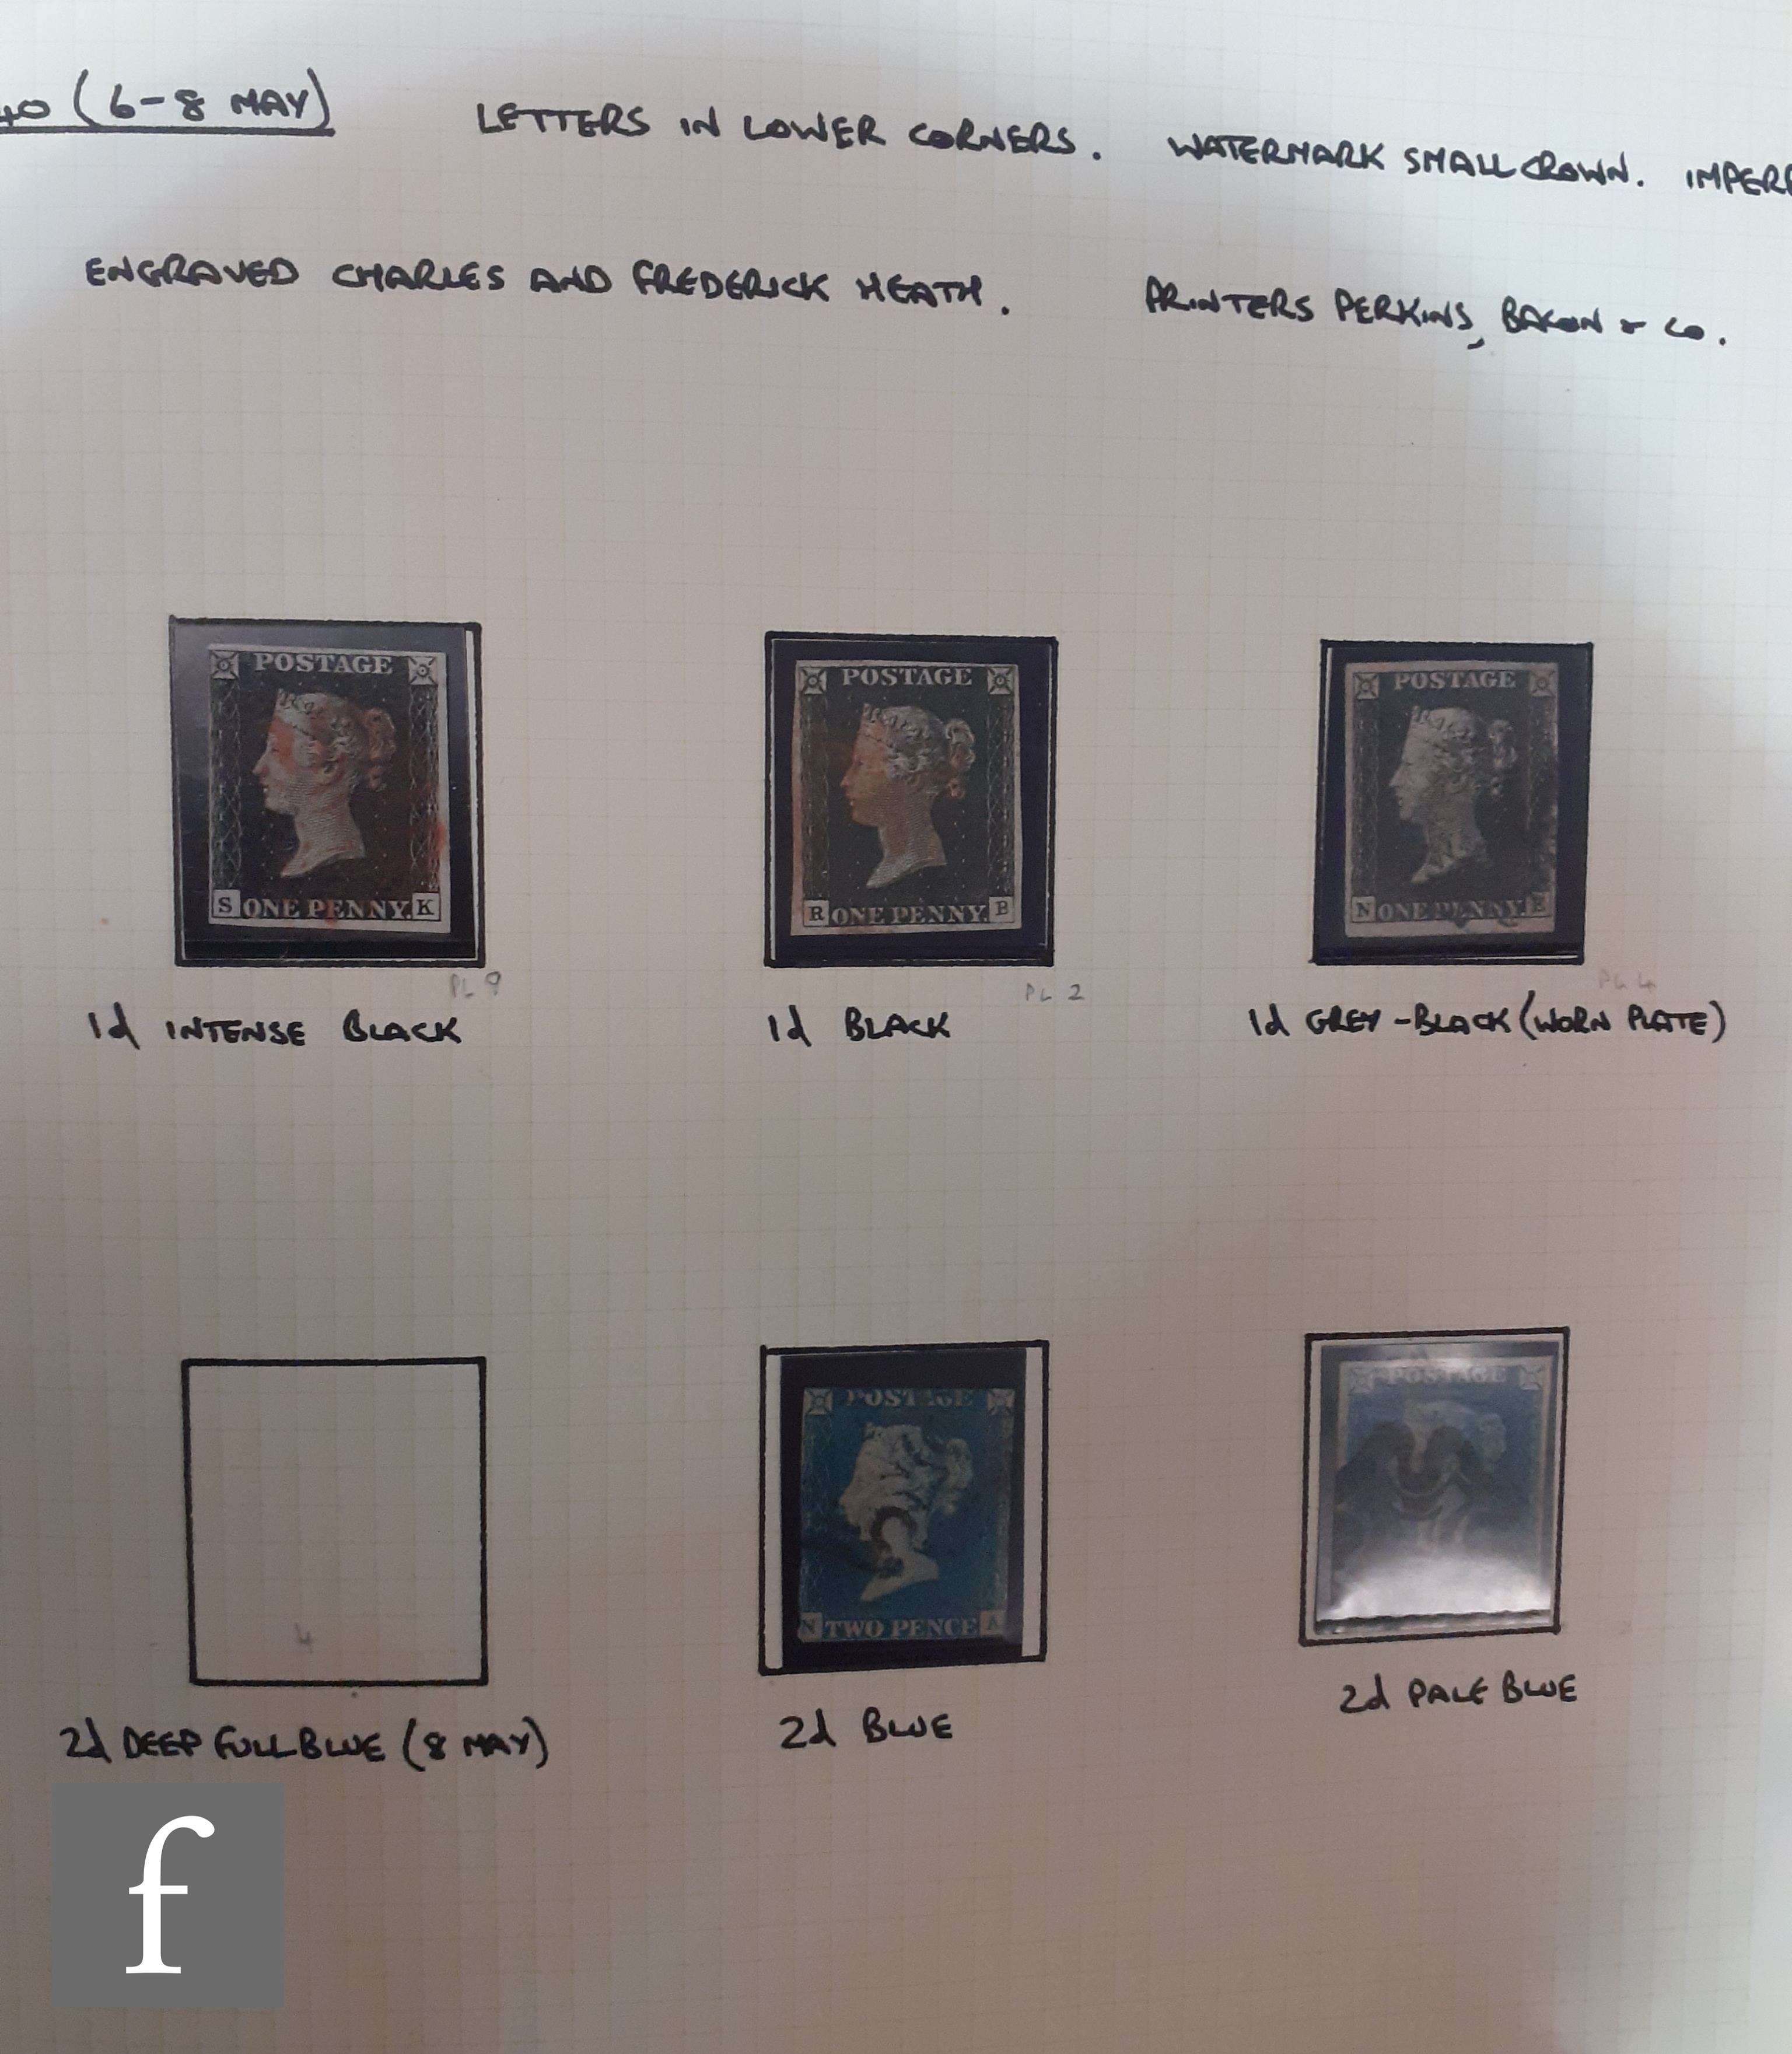 A collection of Great British postage stamps, 1840 through to 1935, including pre-1840 postal